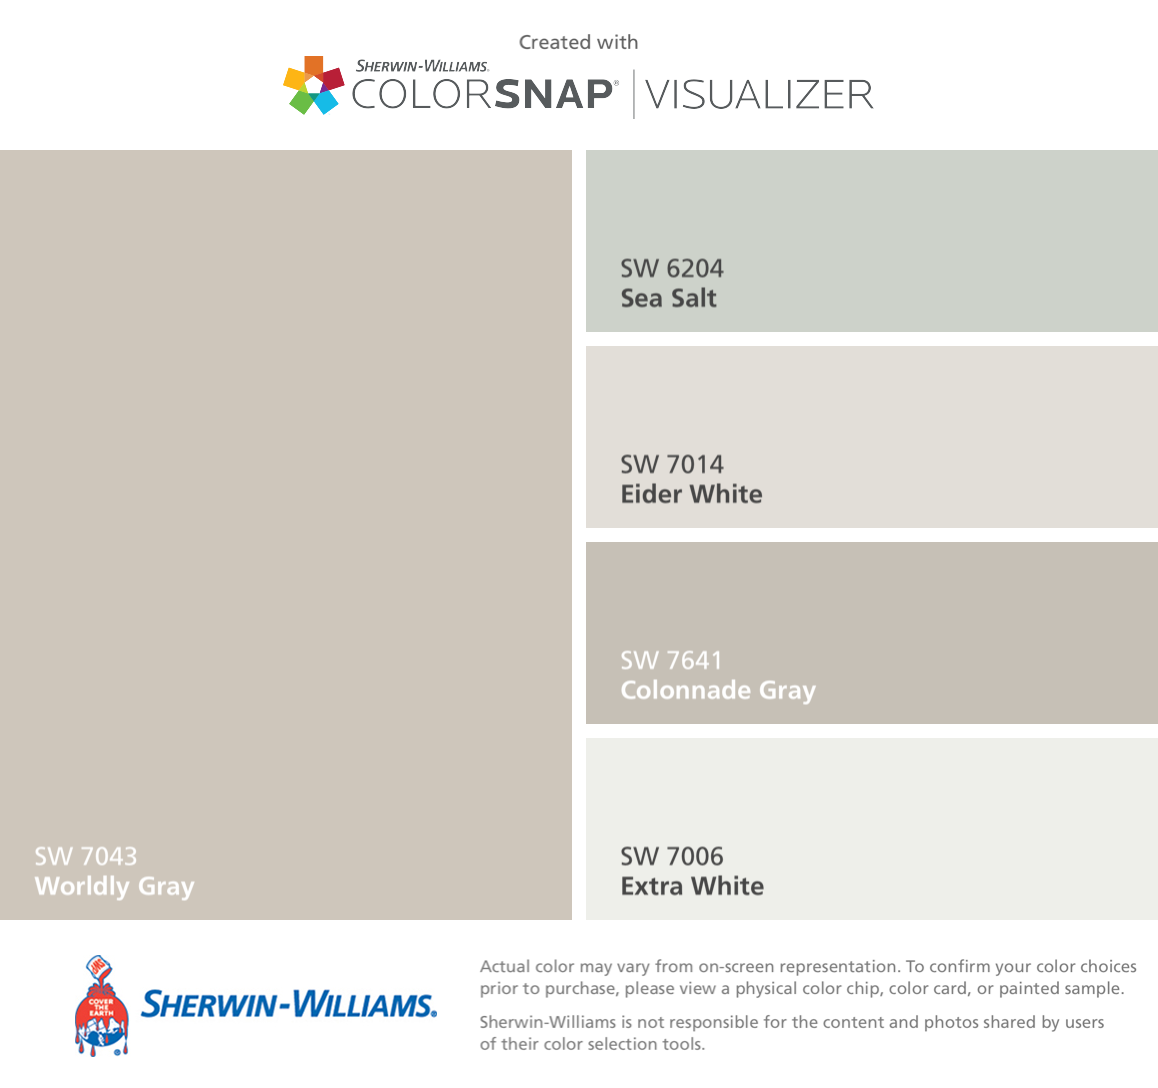 I Found These Colors With Colorsnap Visualizer For Iphone By Sherwin Williams Worldly Gray Sw 7043 Sea Salt 6204 Eider White 7014